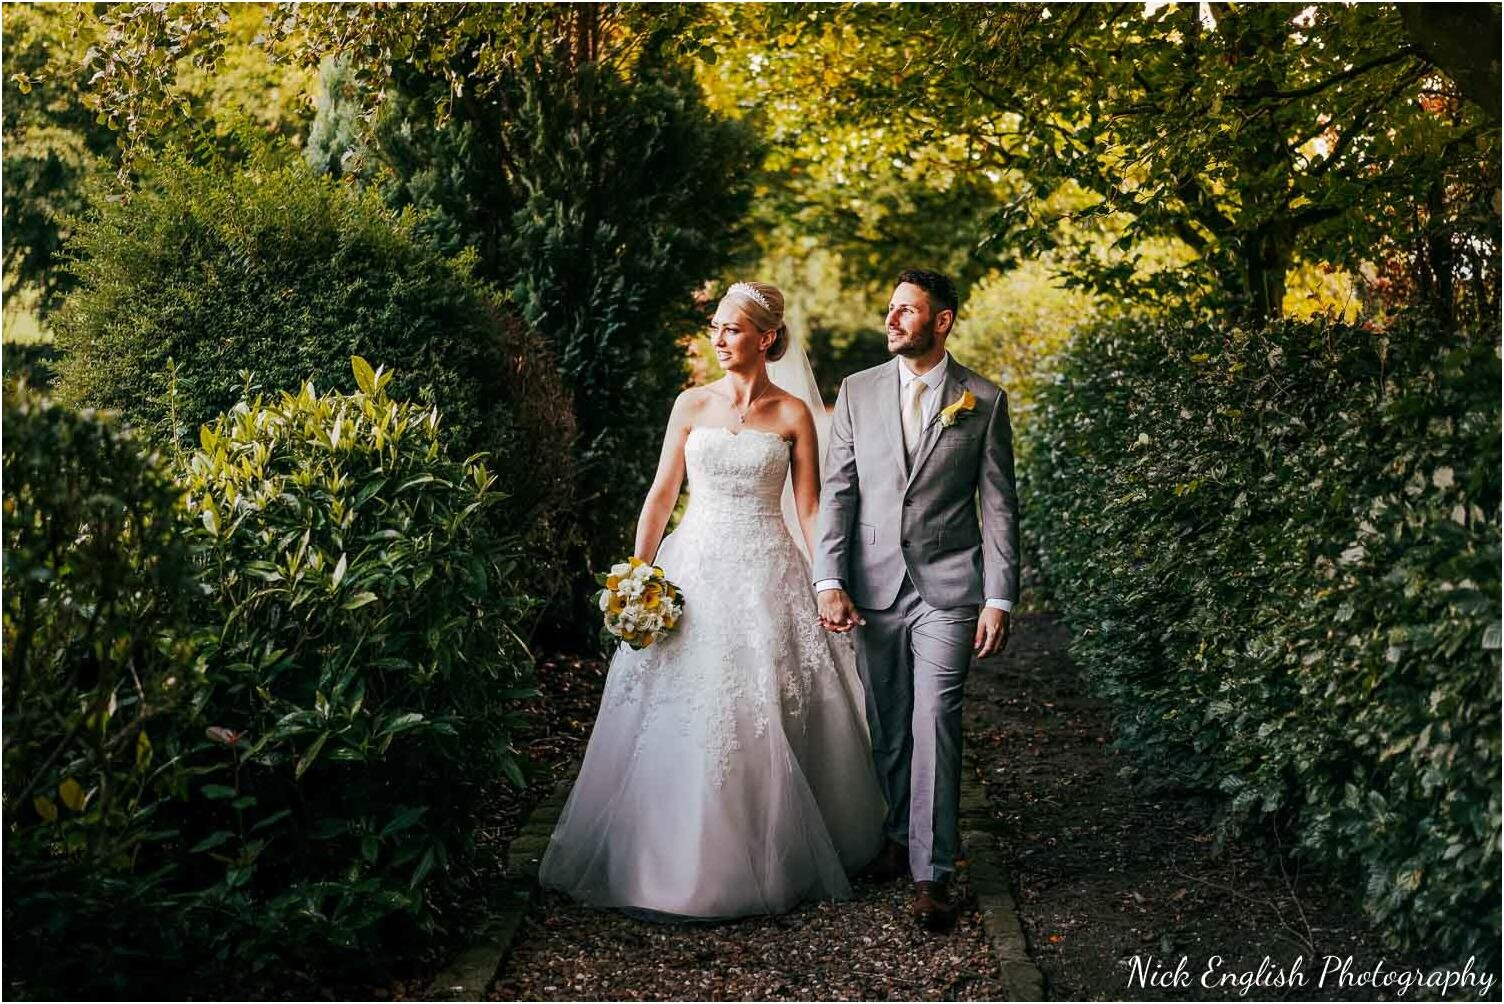 Falcon_Manor_Yorkshire_Wedding_Photographer-107.jpg